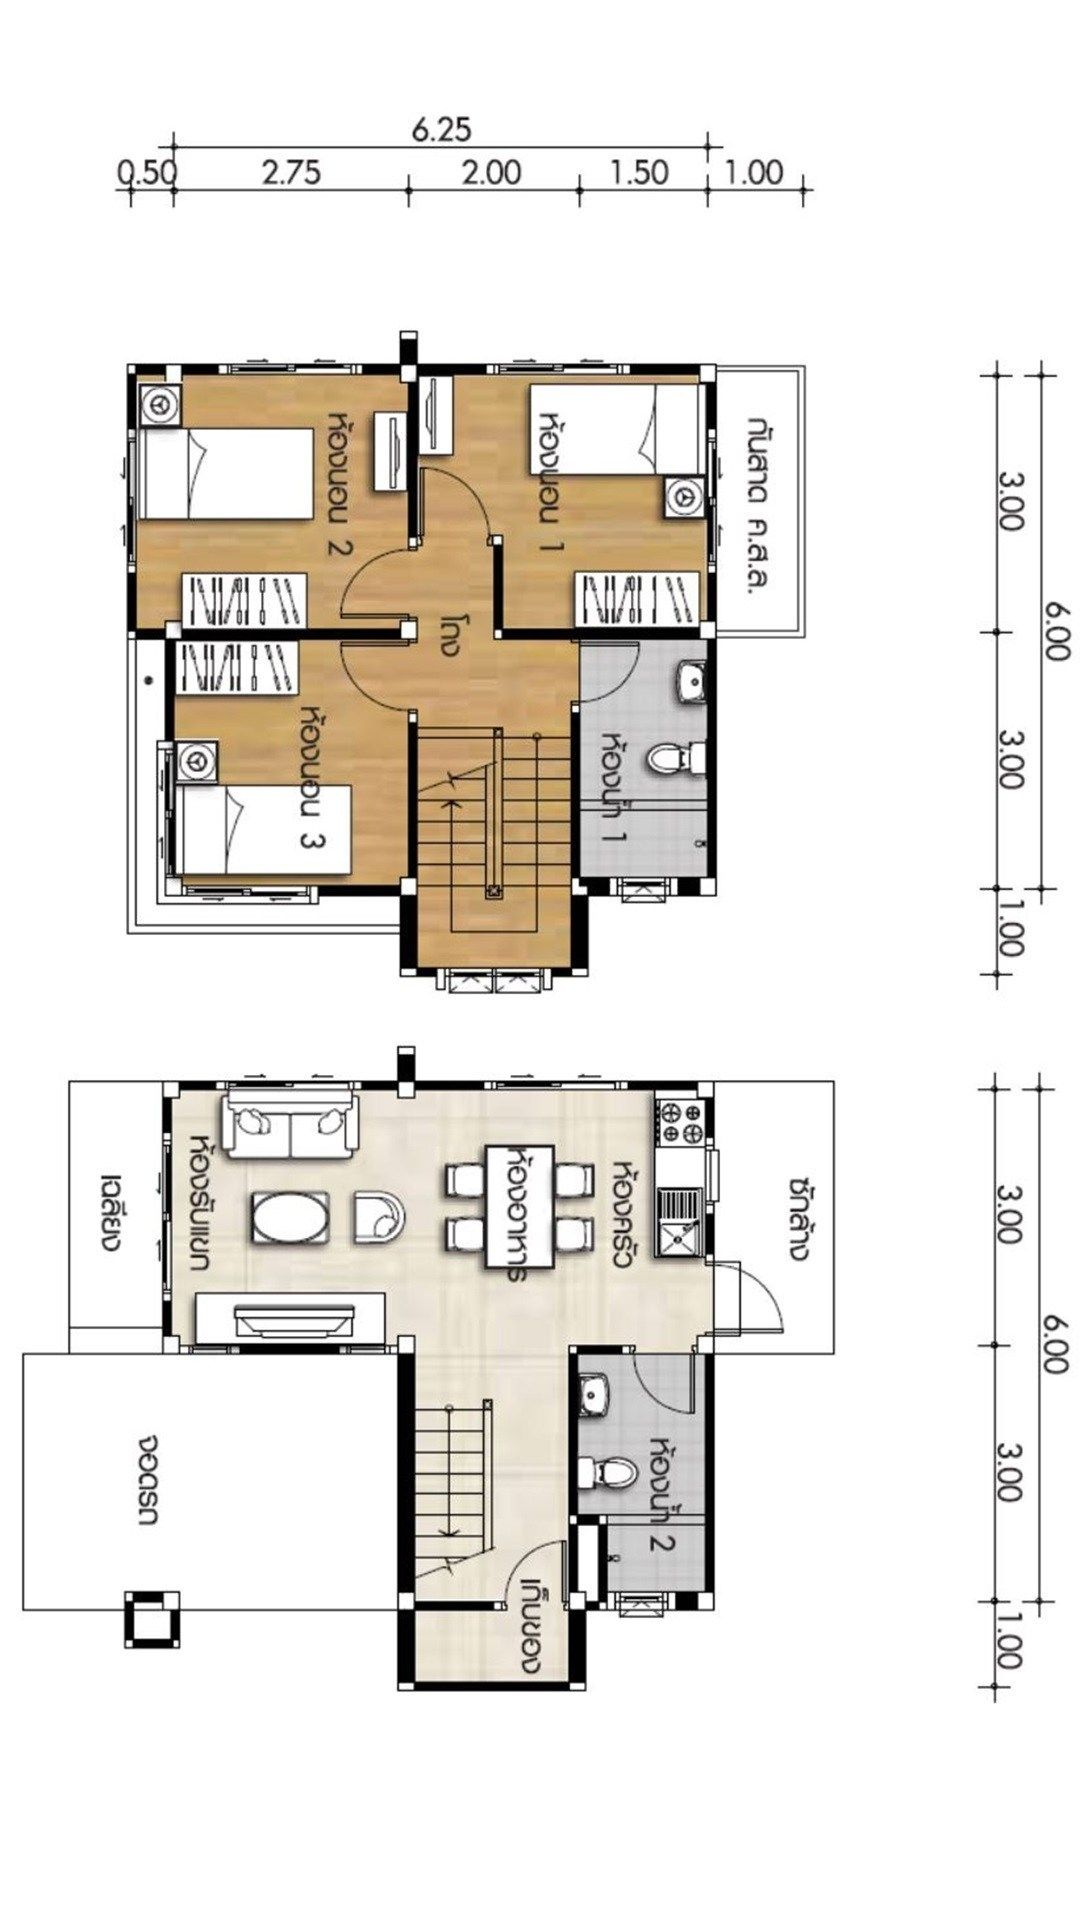 Small House Plan 6x6 25m With 3 Bedrooms Home Ideas Small House Design Plans Small House Design Unique House Plans